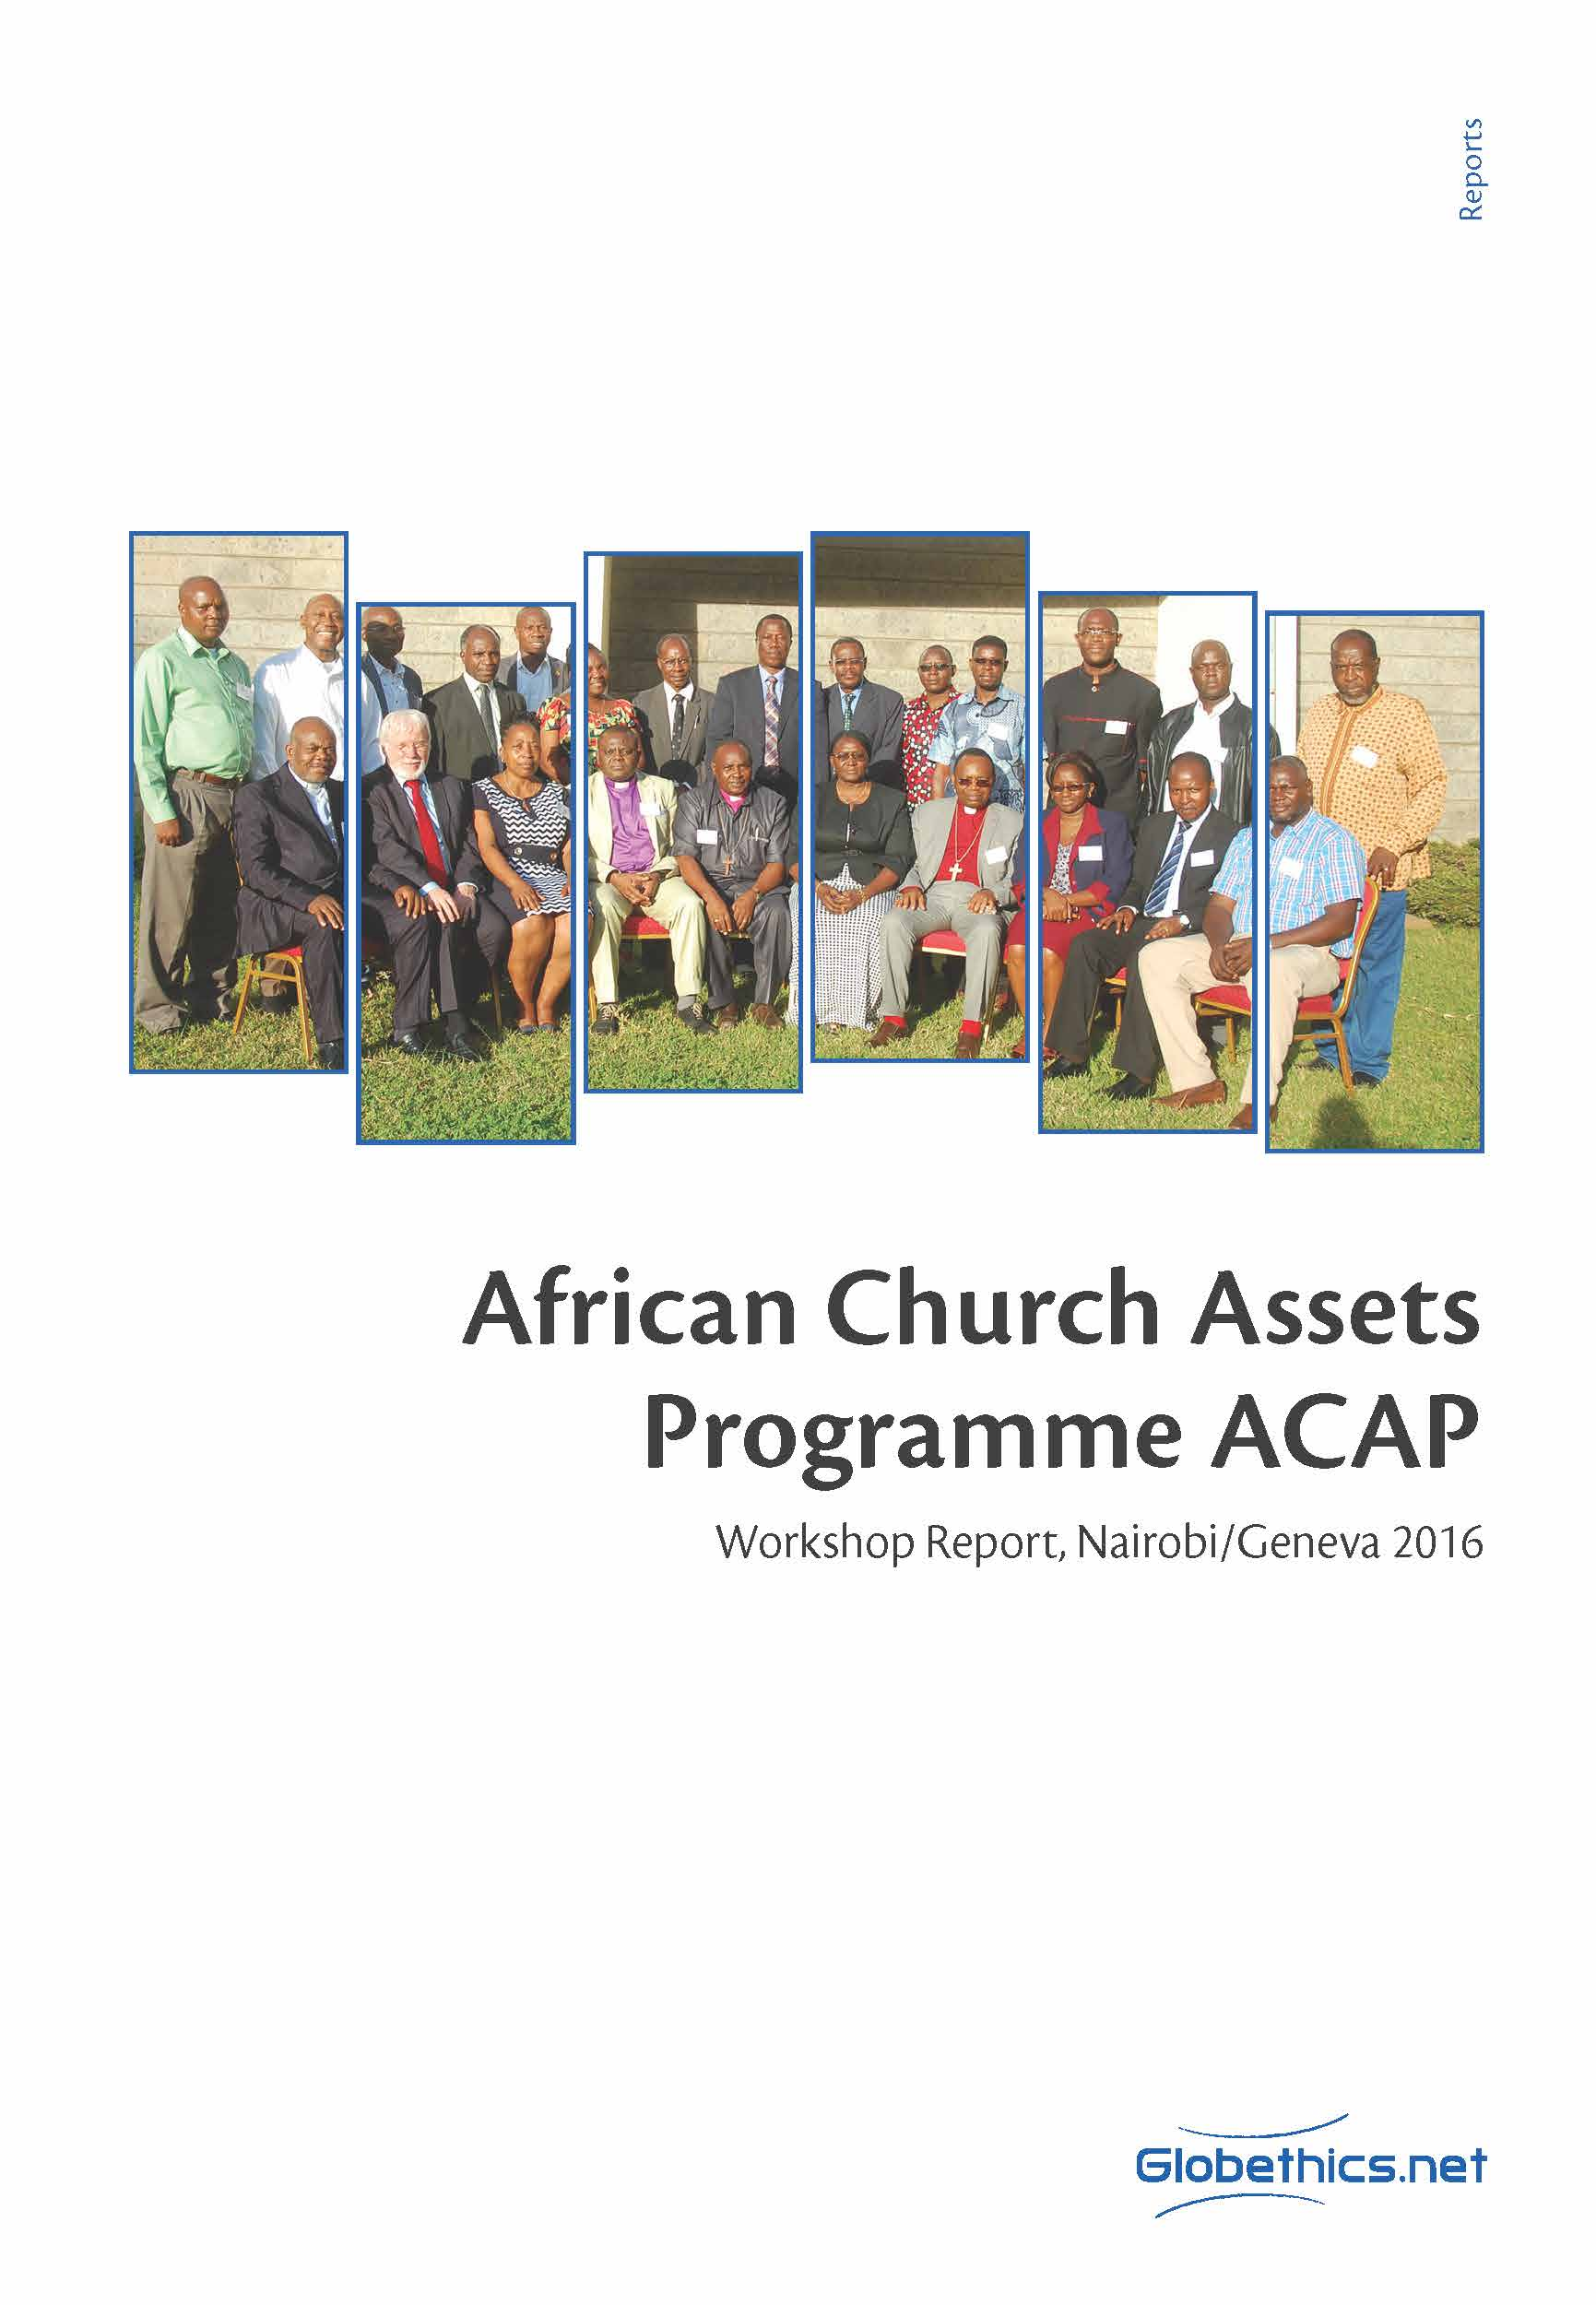 African Church Assets Programme, ACAP Report